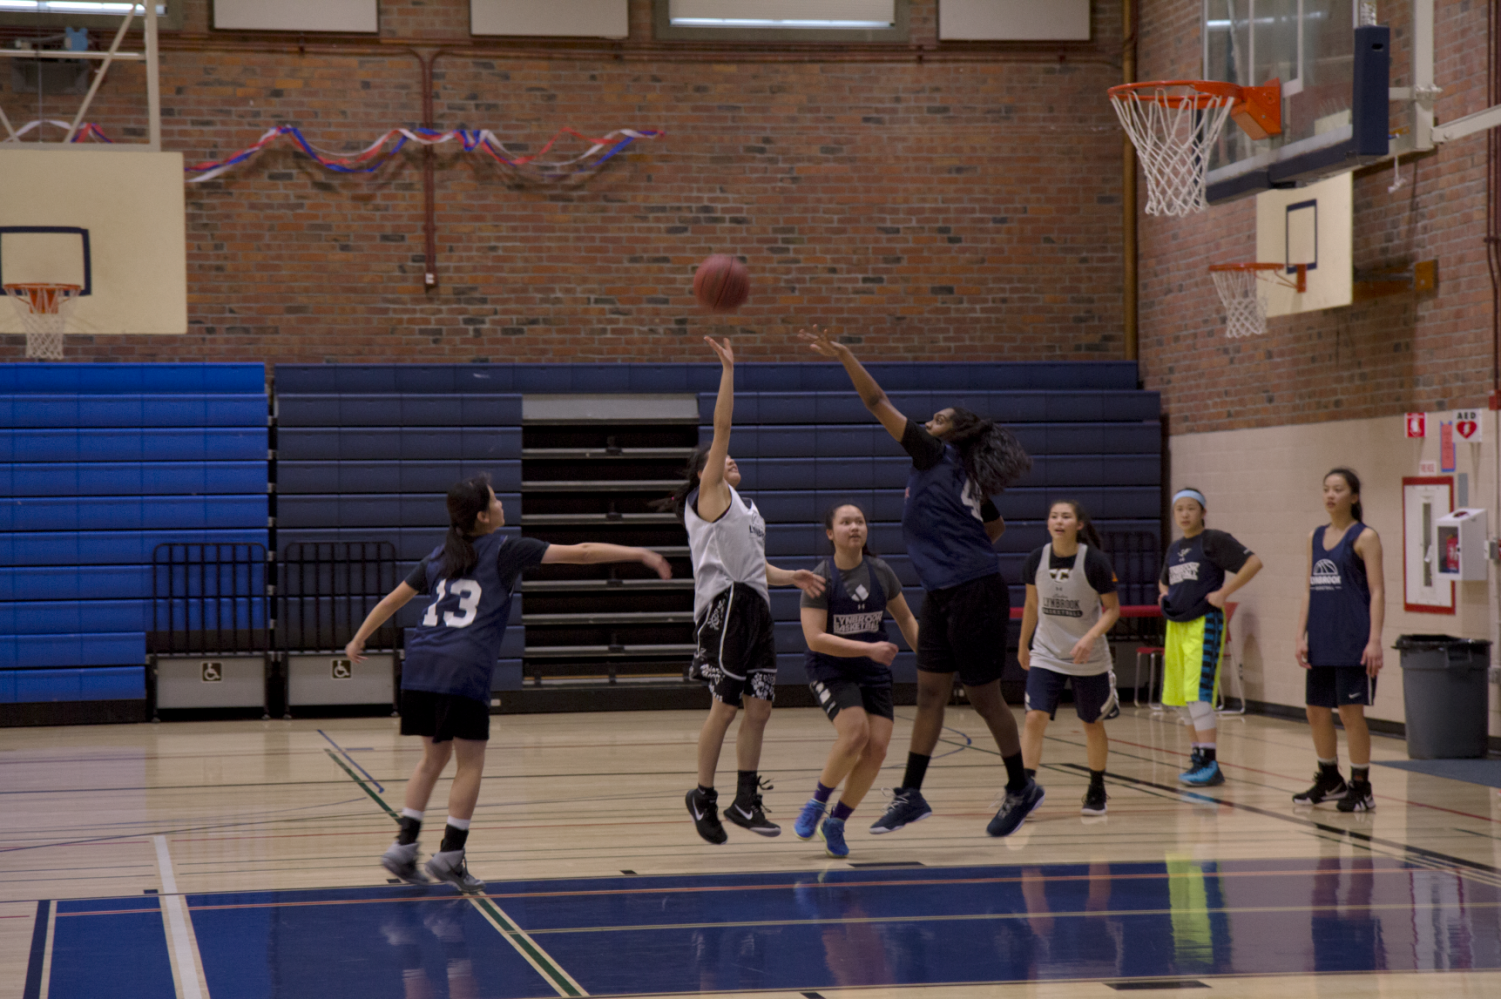 Girls basketball breaks a sweat at their practice, training hard in order to play well and increase their chances of winning at each game. Their drills include shooting, passing, rebounding and scrimmaging.